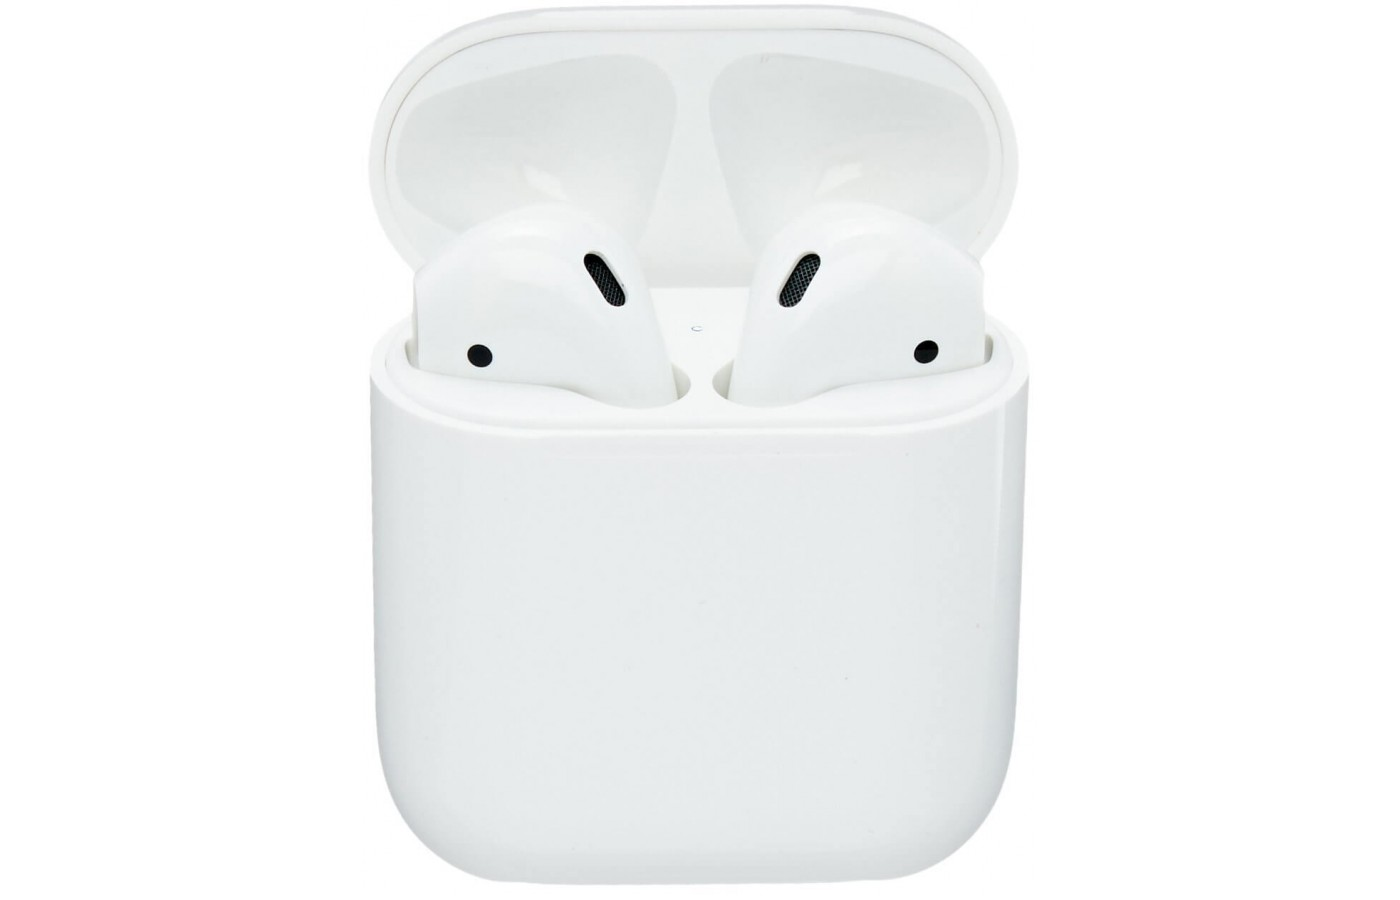 The Apple Air Pods come with a handle protective charging case